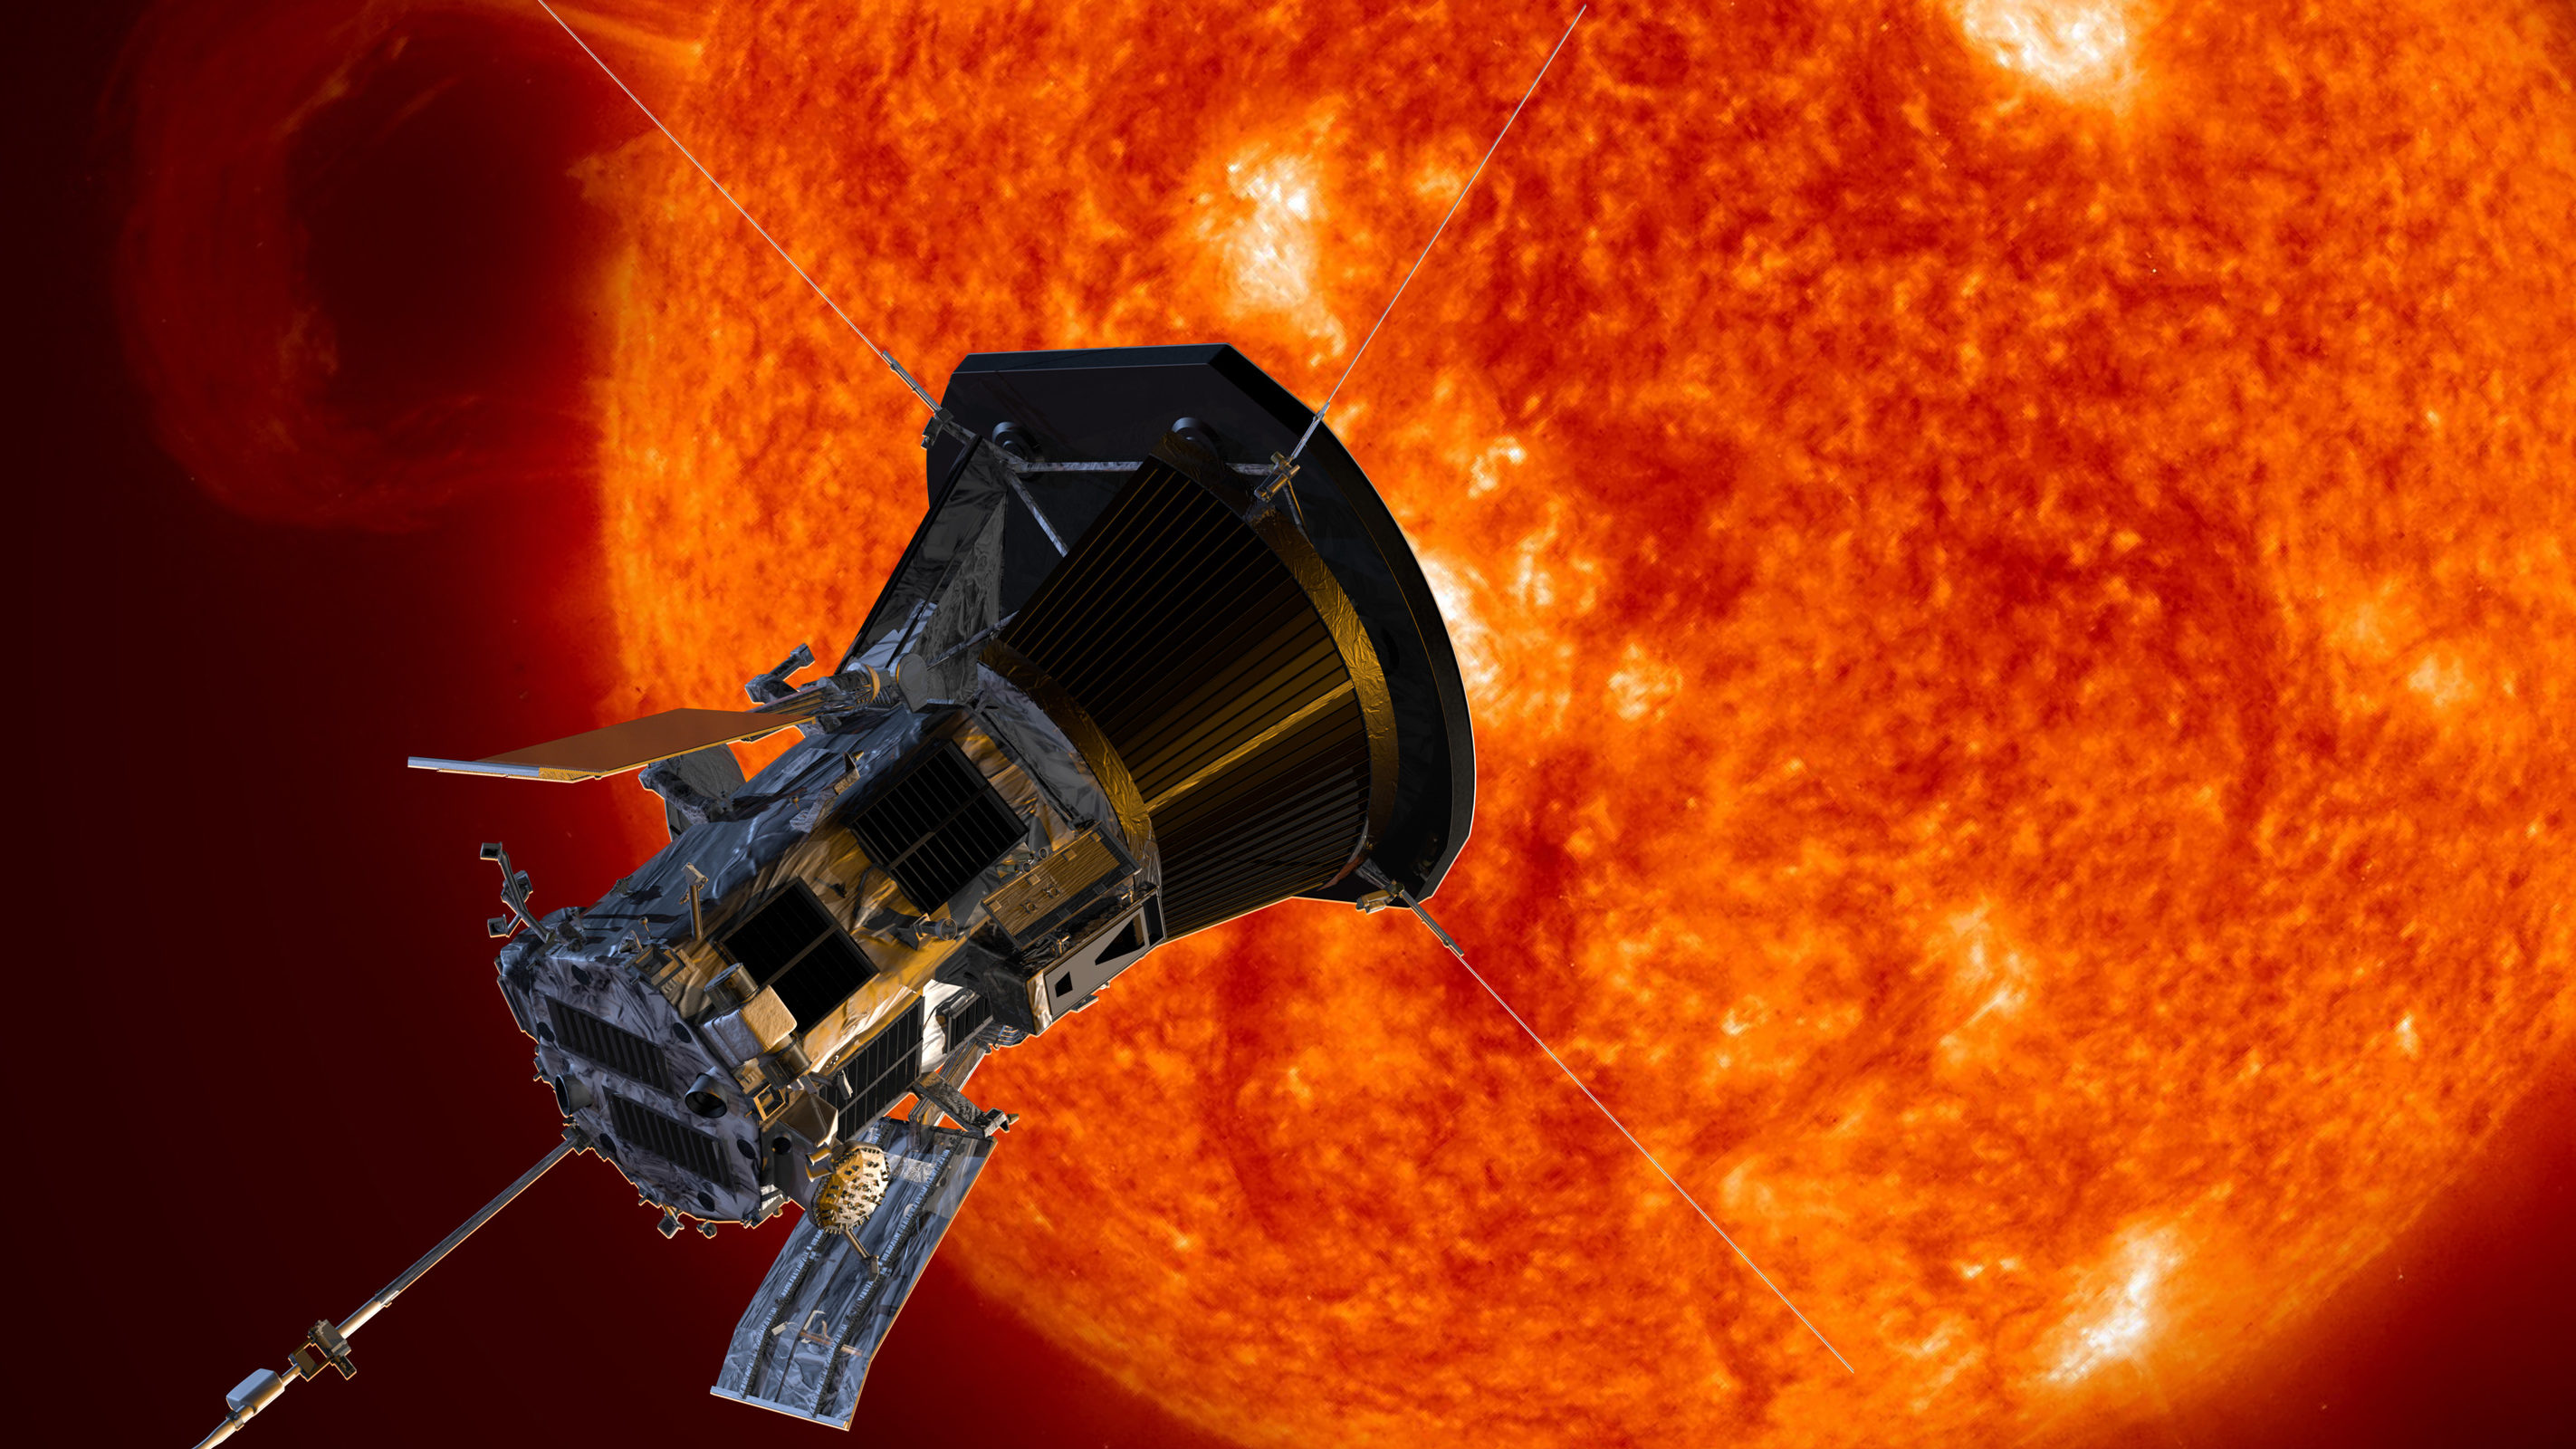 An artist's rendering of the Parker Solar Probe approaching the sun